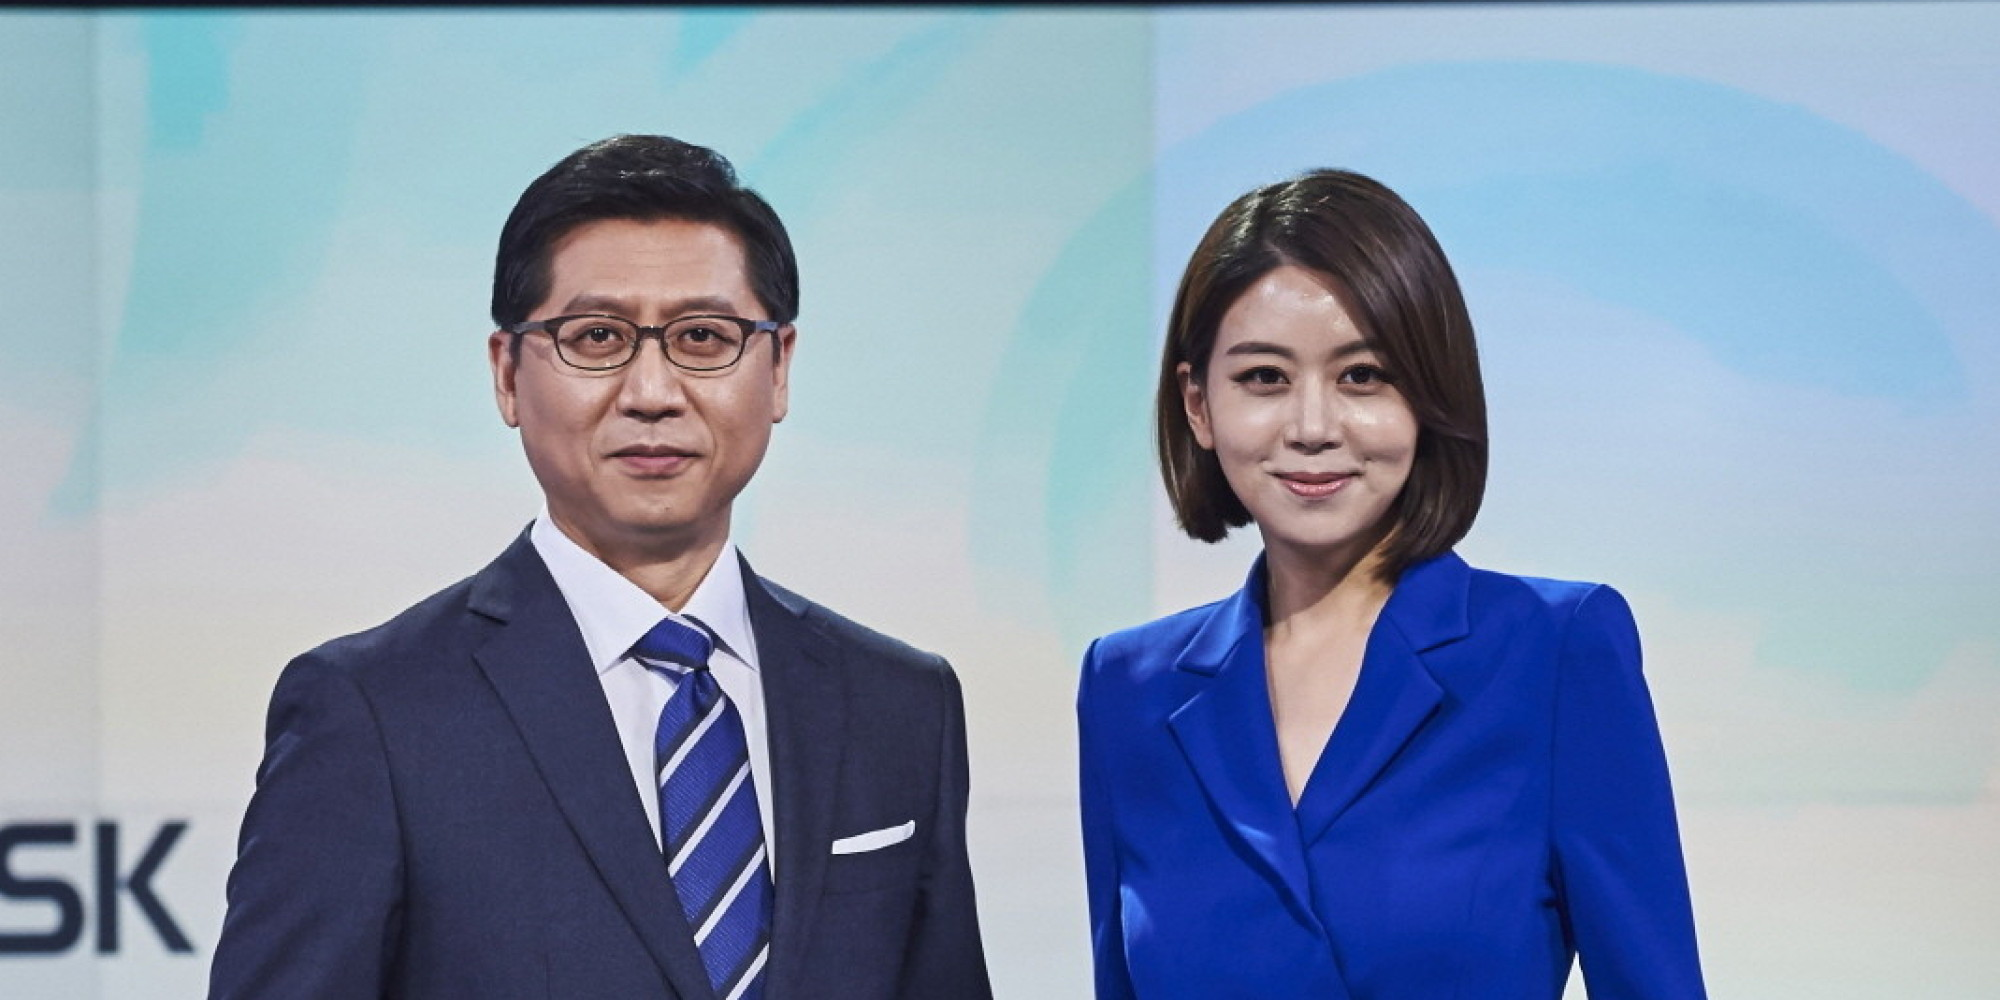 A Press Conference Was Held At Mbc News Desk M Lounge In Sangam Dong Mapo Gu Seoul On This Day Park Sung Ho Sohn Jung Eun